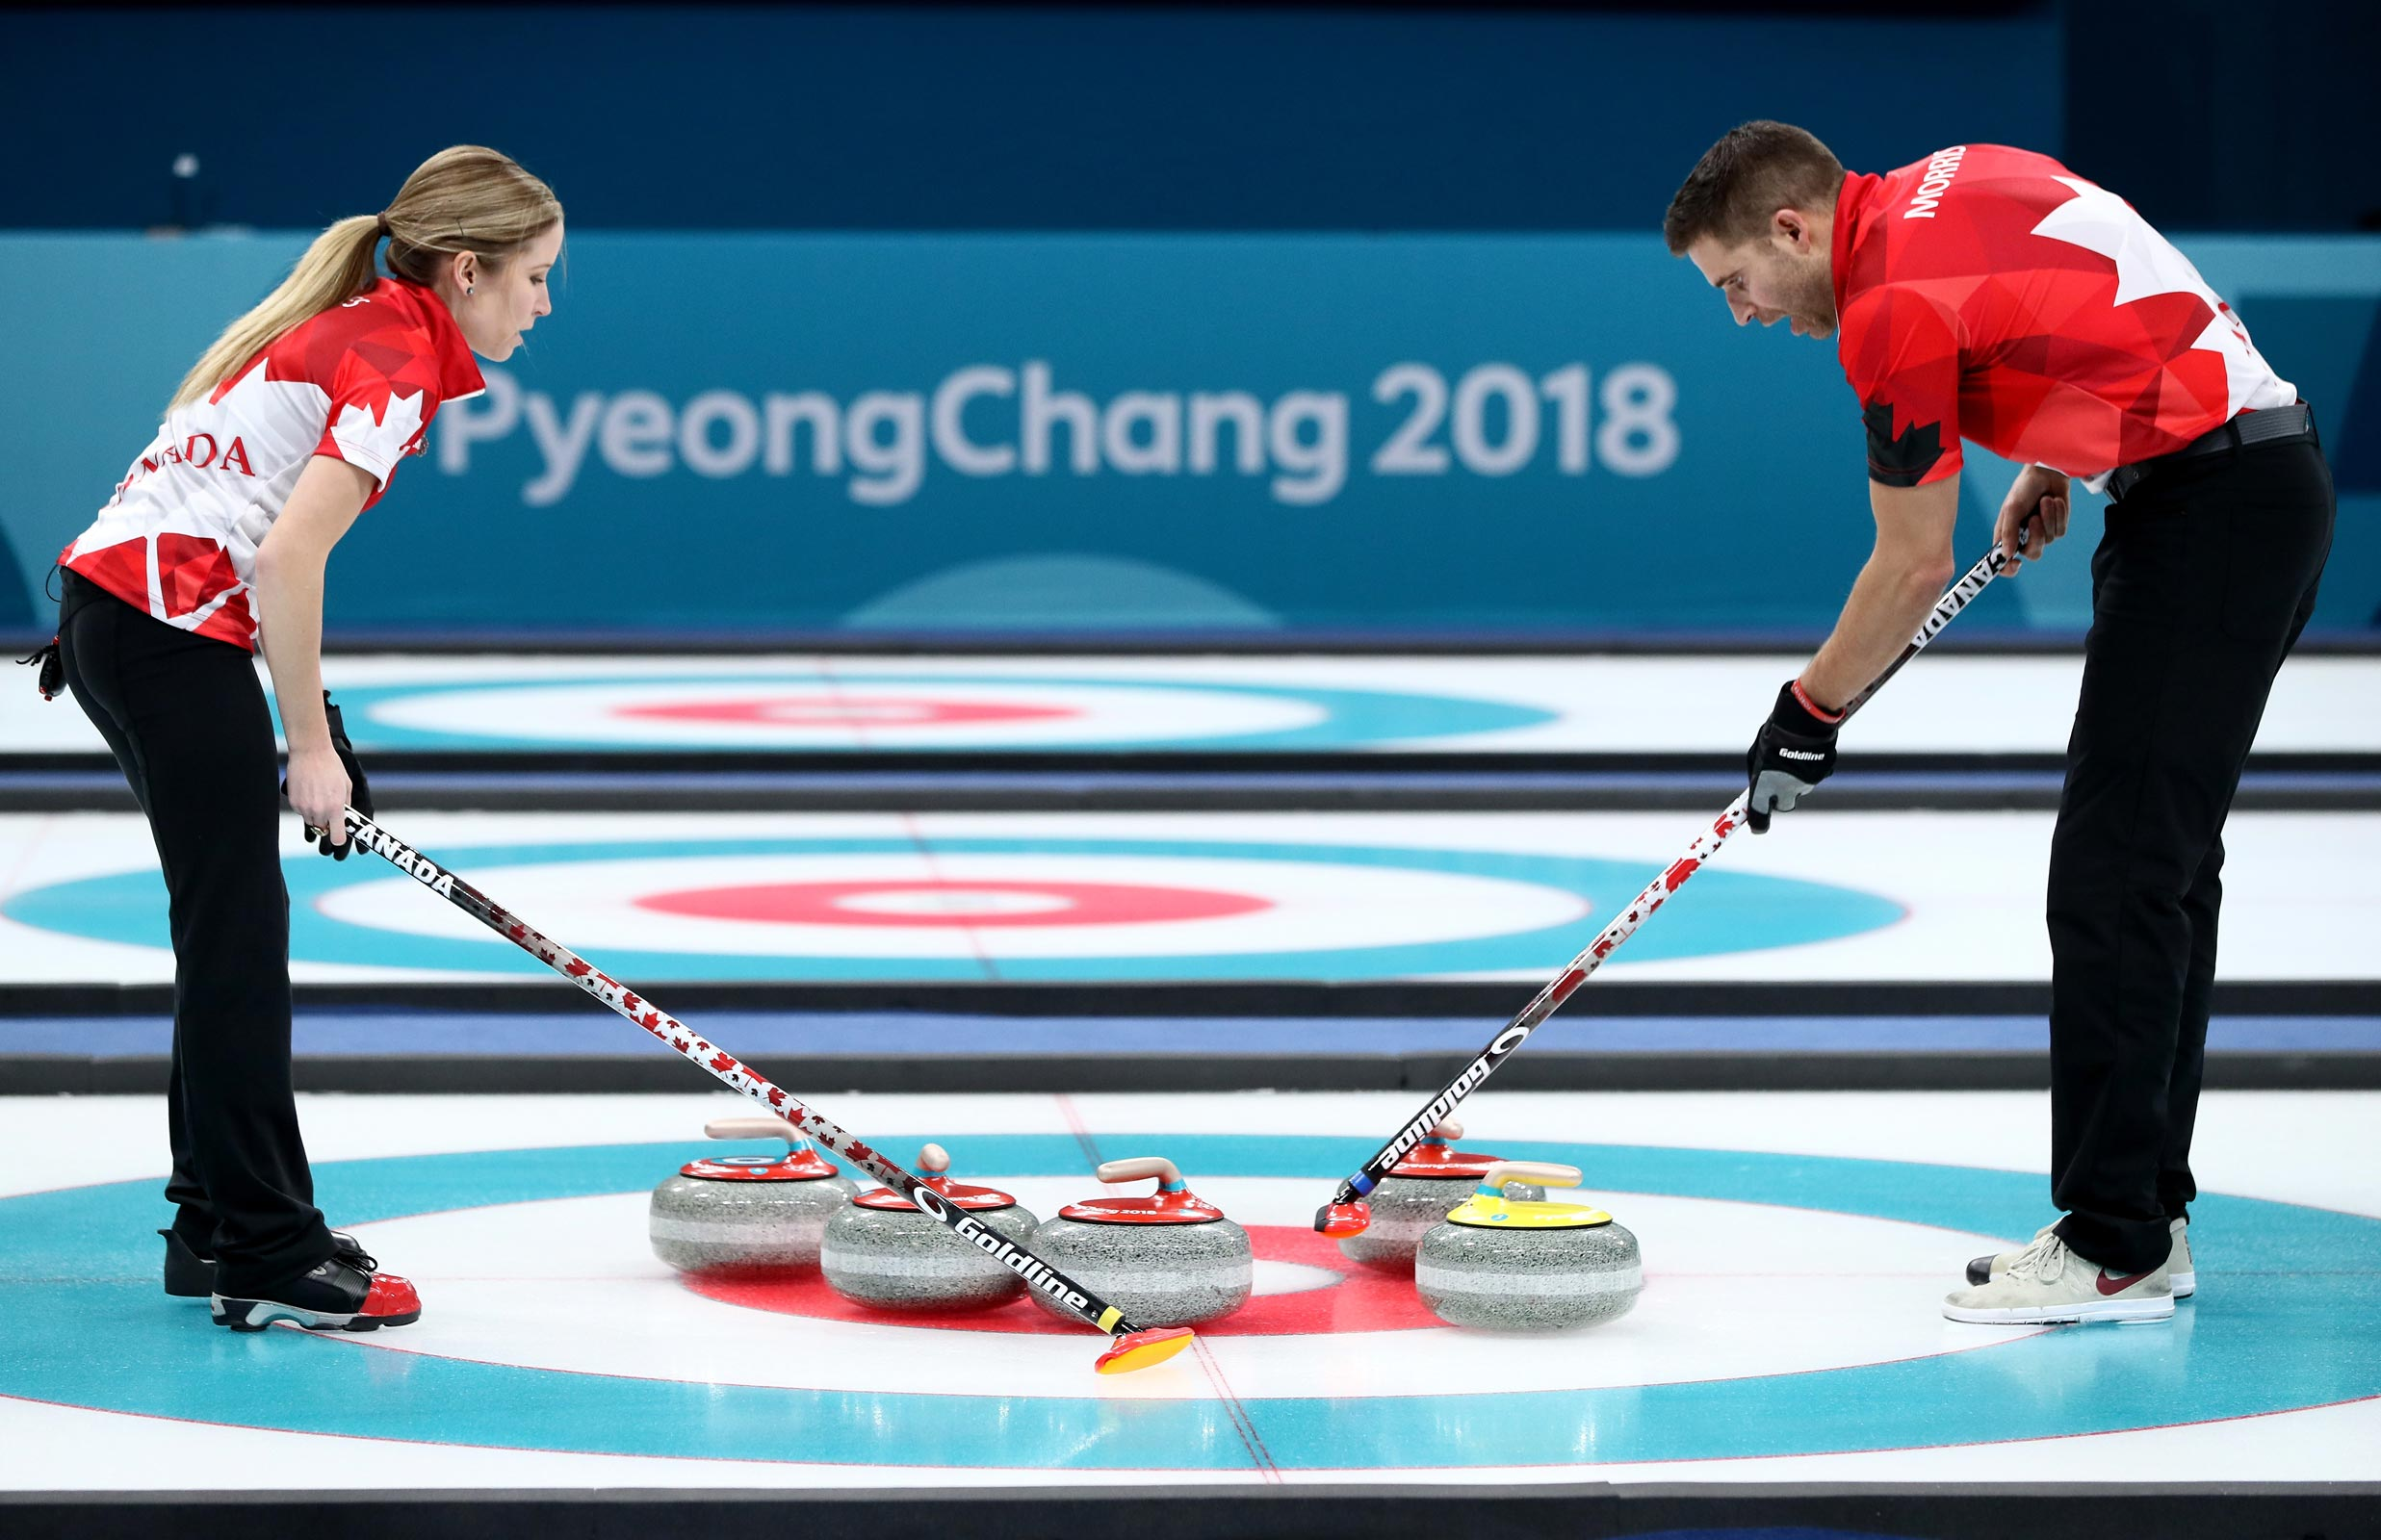 Curling - Mixed Doubles Gold Medal Game